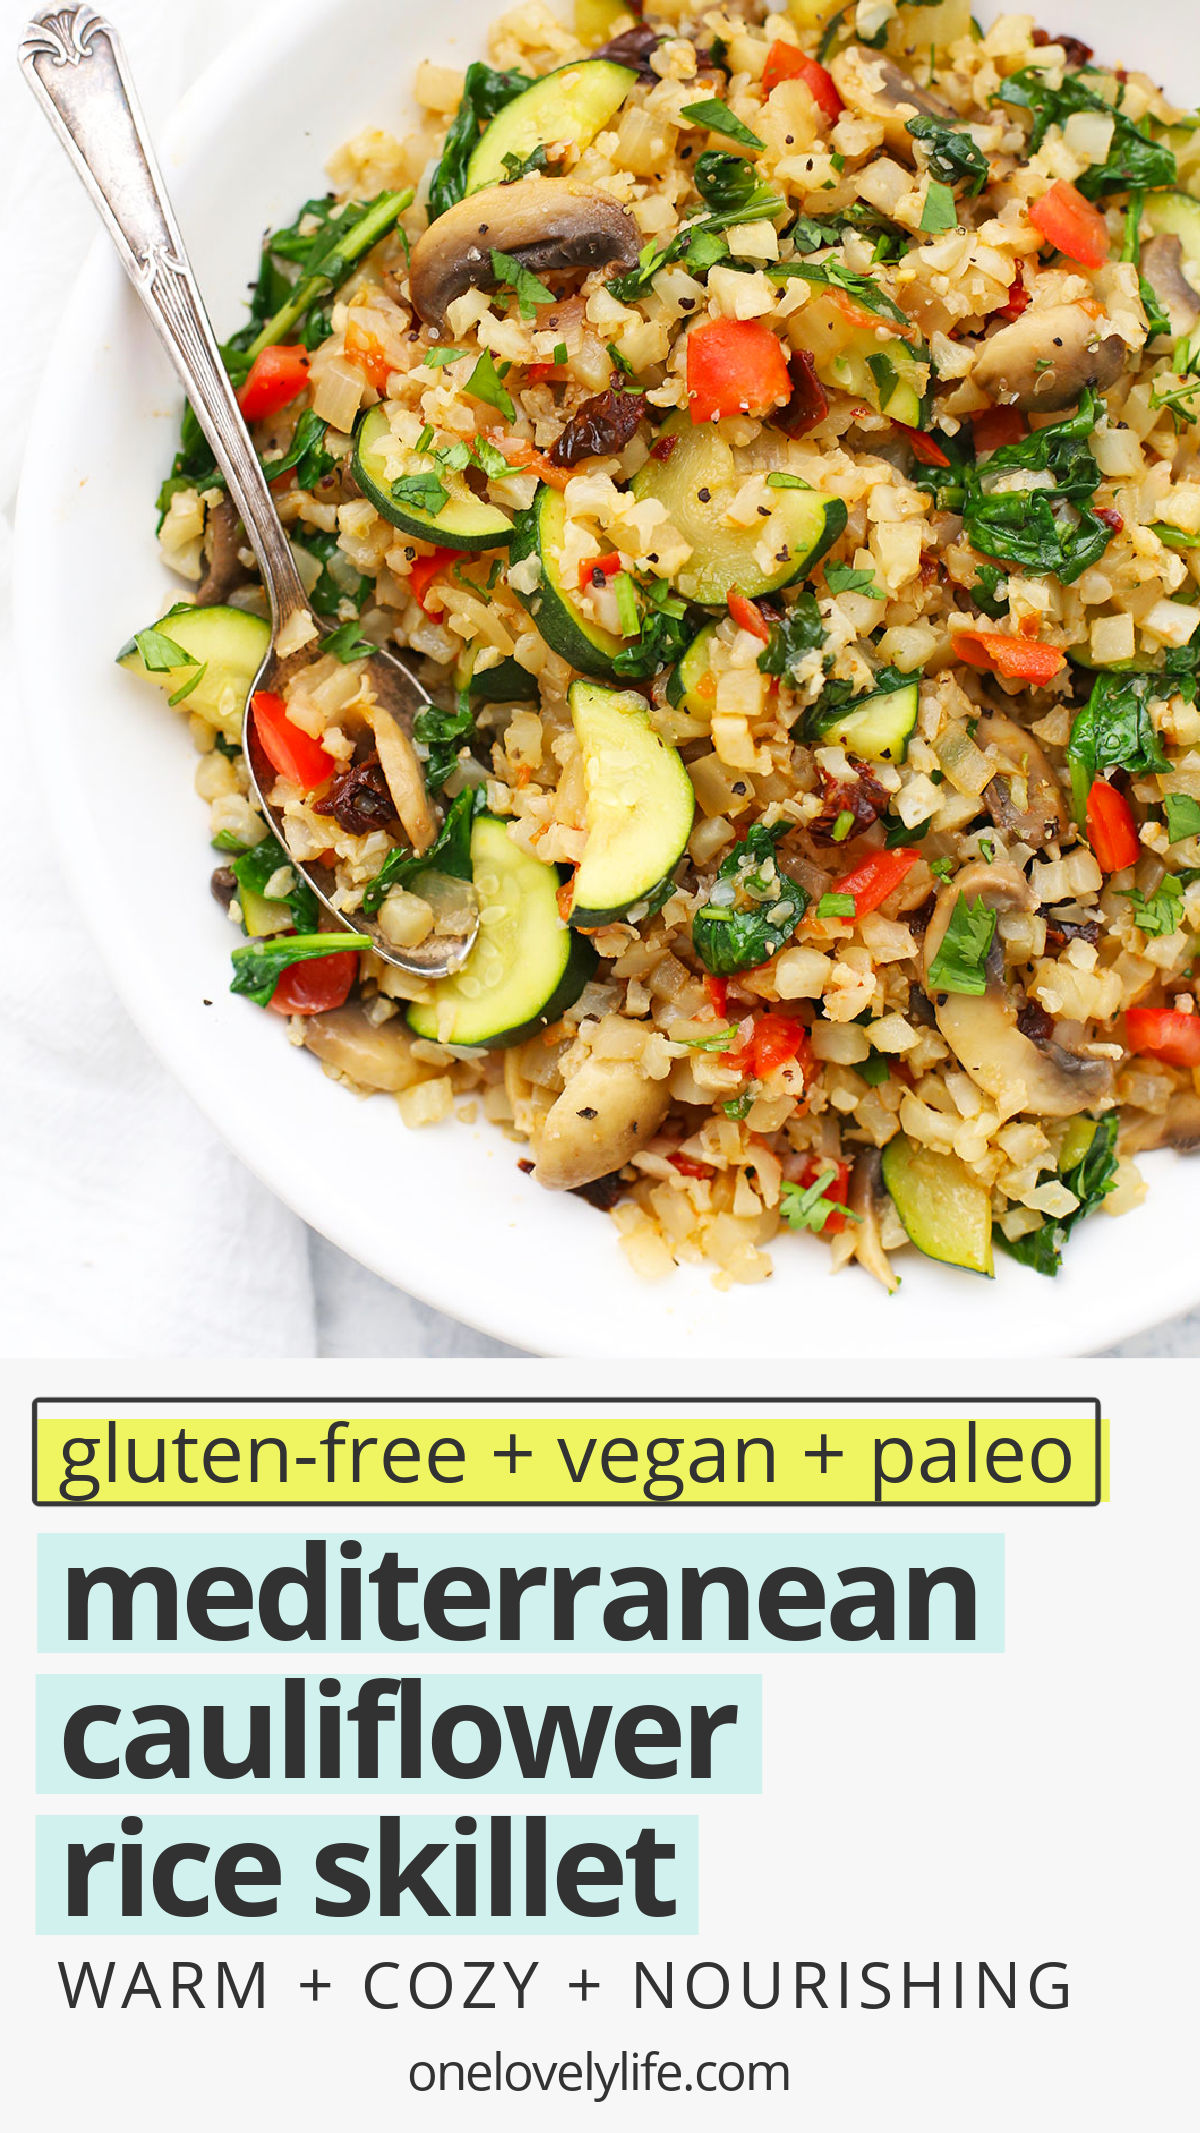 Mediterranean Cauliflower Rice Skillet -This easy cauliflower rice recipe tastes amazing and works for any meal of the day. Don't miss my meal prep tips + serving ideas!// cauli rice // cauliflower rice with mushrooms // mediterranean cauliflower rice // cauliflower rice pilaf // breakfast cauliflower rice // paleo breakfast // paleo meal prep // whole30 breakfast // whole30 meal prep // gluten free // dairy free